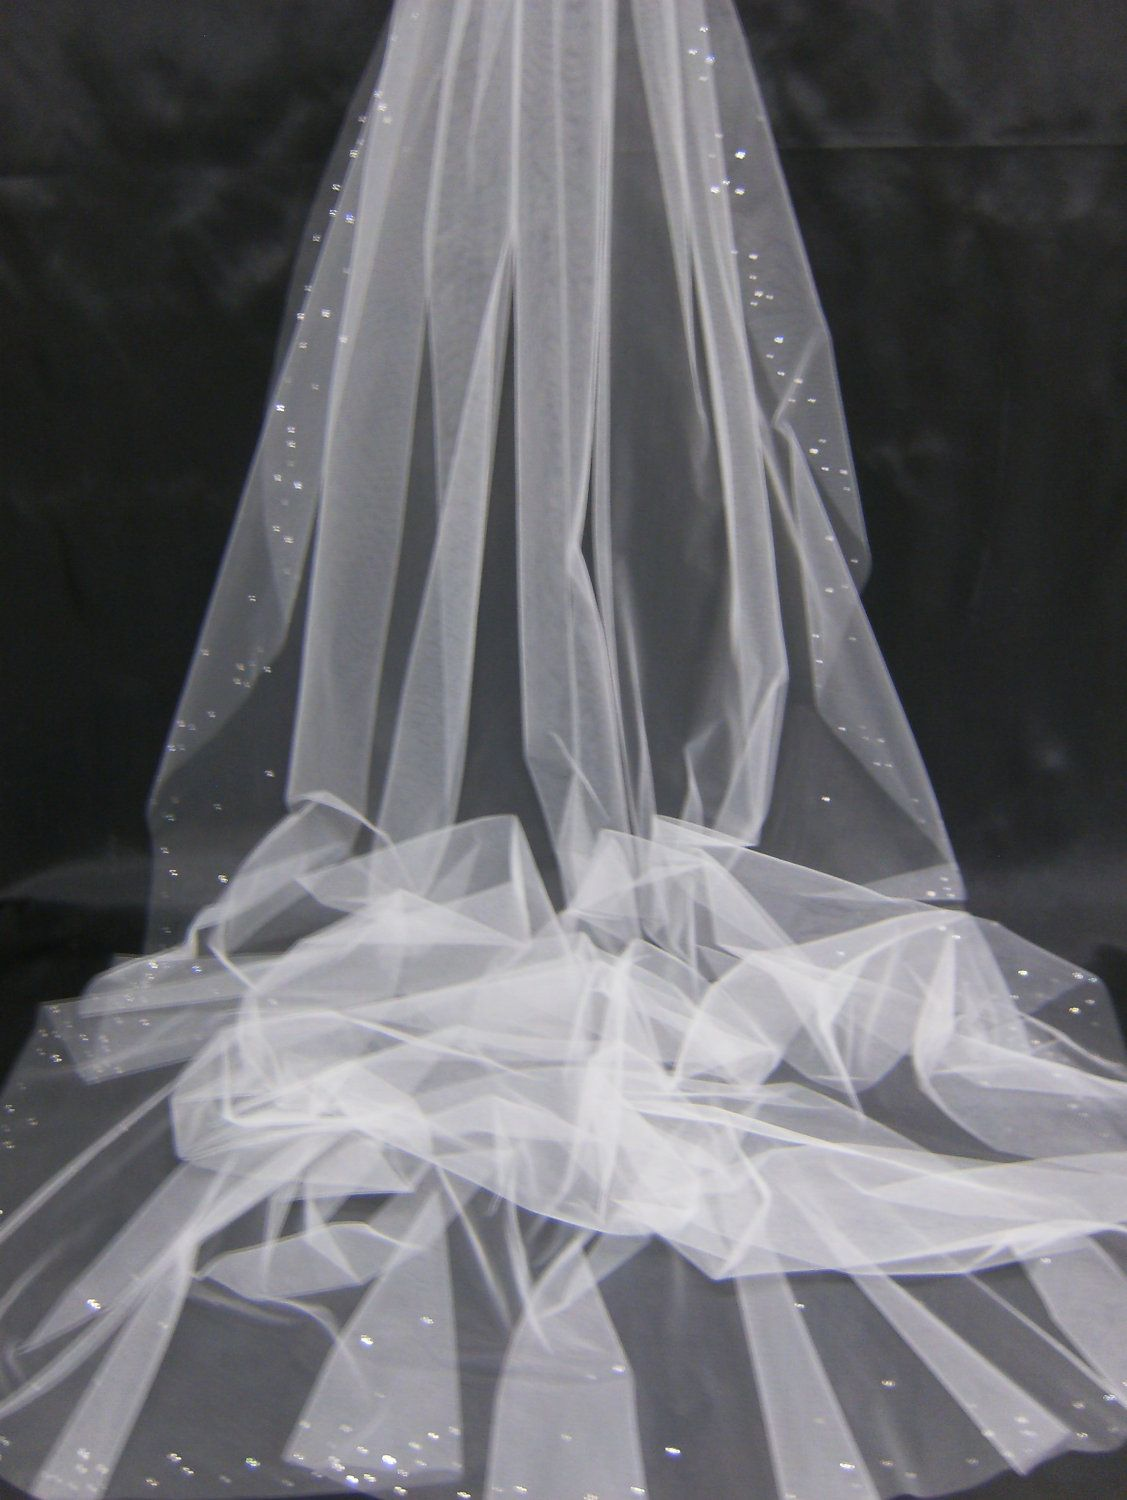 cathedral veil cathedral wedding veil royal wedding veil chapel length veil beaded cathedral veil cathedral crystal veil